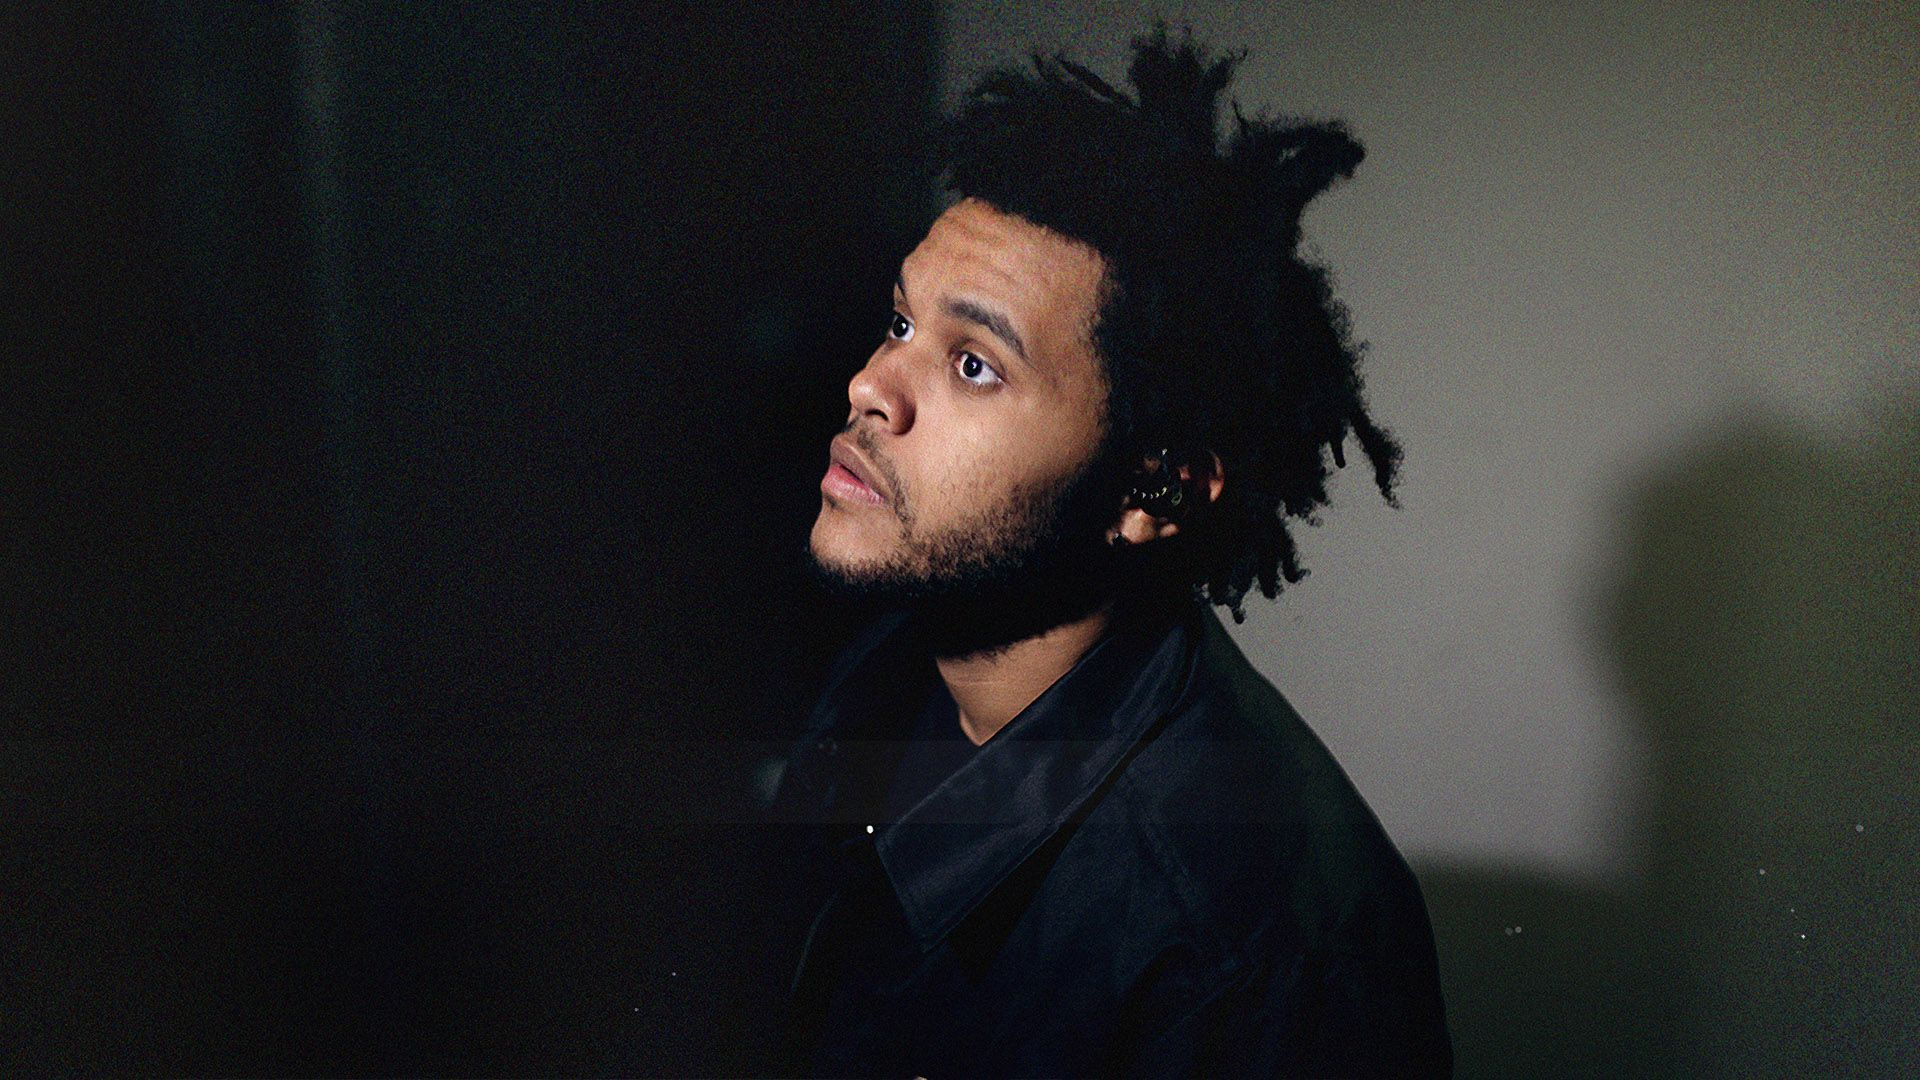 The Weeknd HD Wallpapers The weeknd, Celebrity